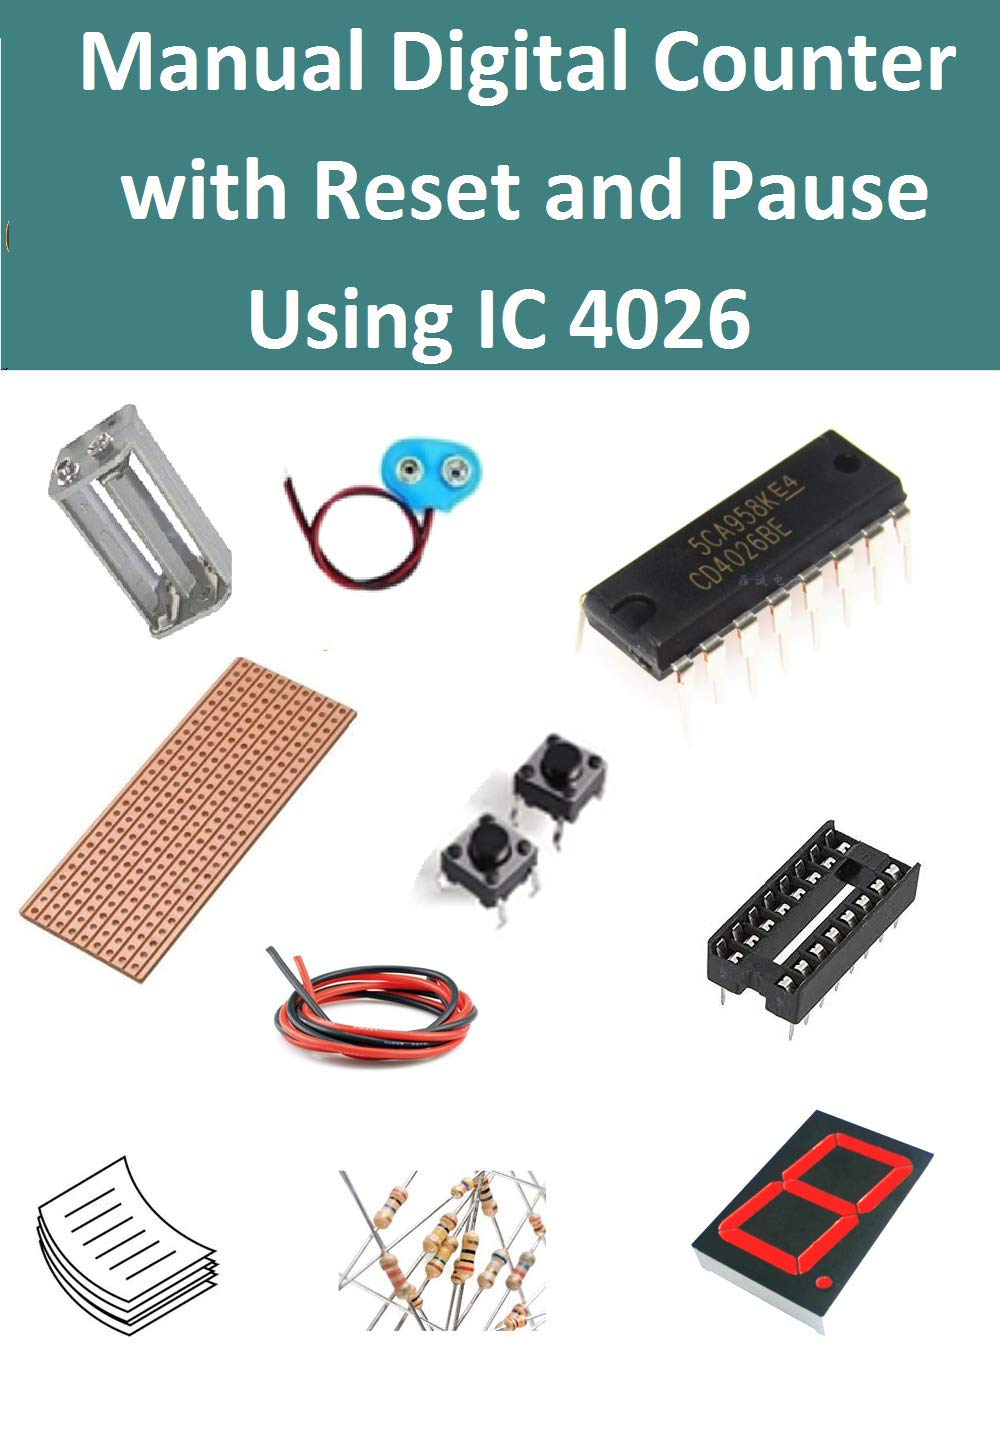 Manual Digital Counter with Reset and Pause Using IC 4026